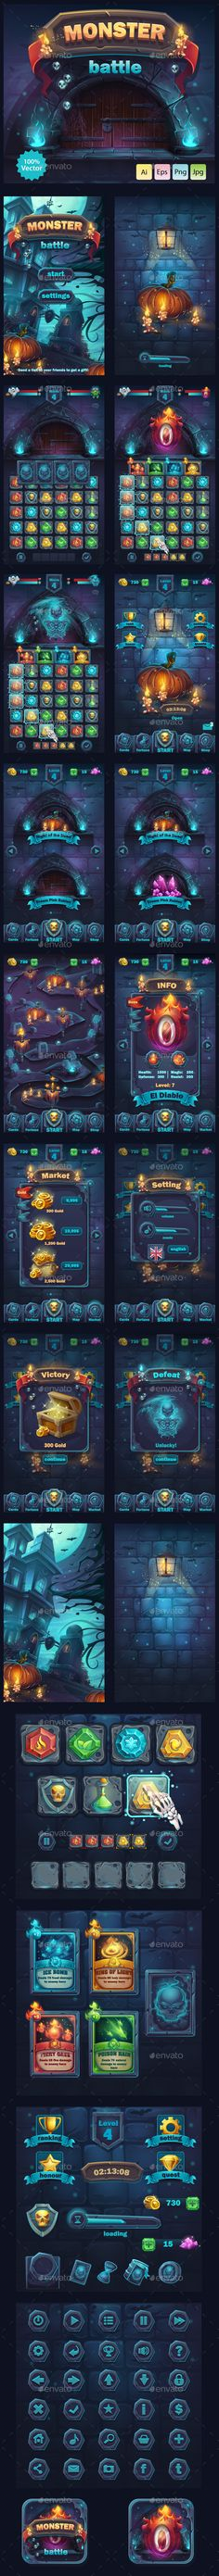 Monster Battle GUI General Description  Complete pack of user interface elements for your web/video game in mobile format.  All elements (AI & EPS format) are 100% vector and fully customizable. All fonts converted to curves. Fonts used: Franklin Gothic FS Demi.  You can use these fonts under a free license or use your own fonts.